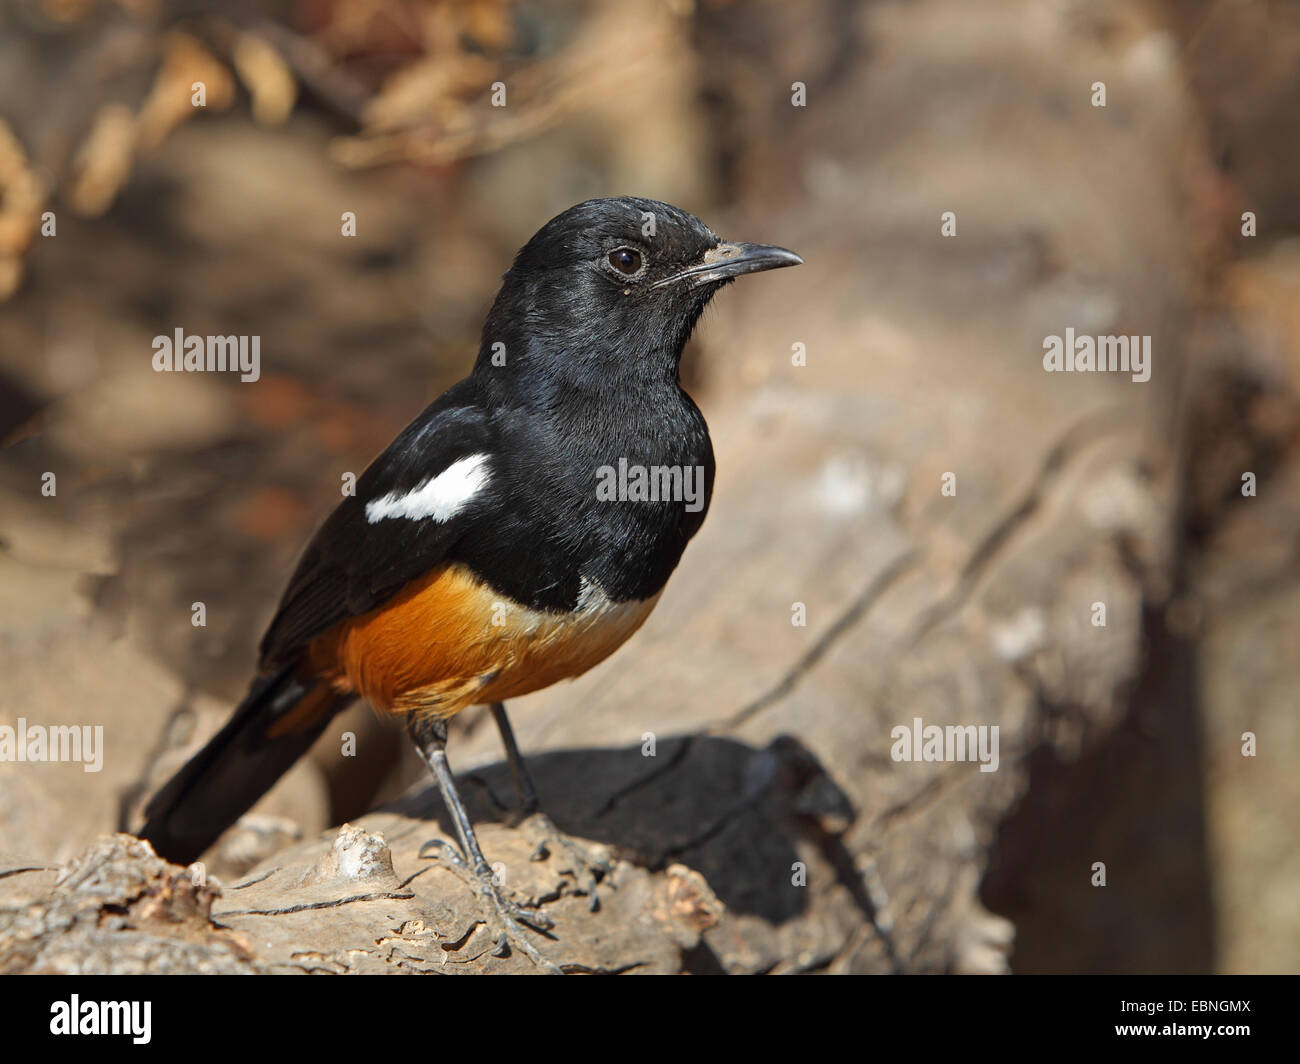 Mocking cliffchat (Myrmecocichla cinnamomeiventris), male sits on a stone, South Africa, Pilanesberg National Park - Stock Image